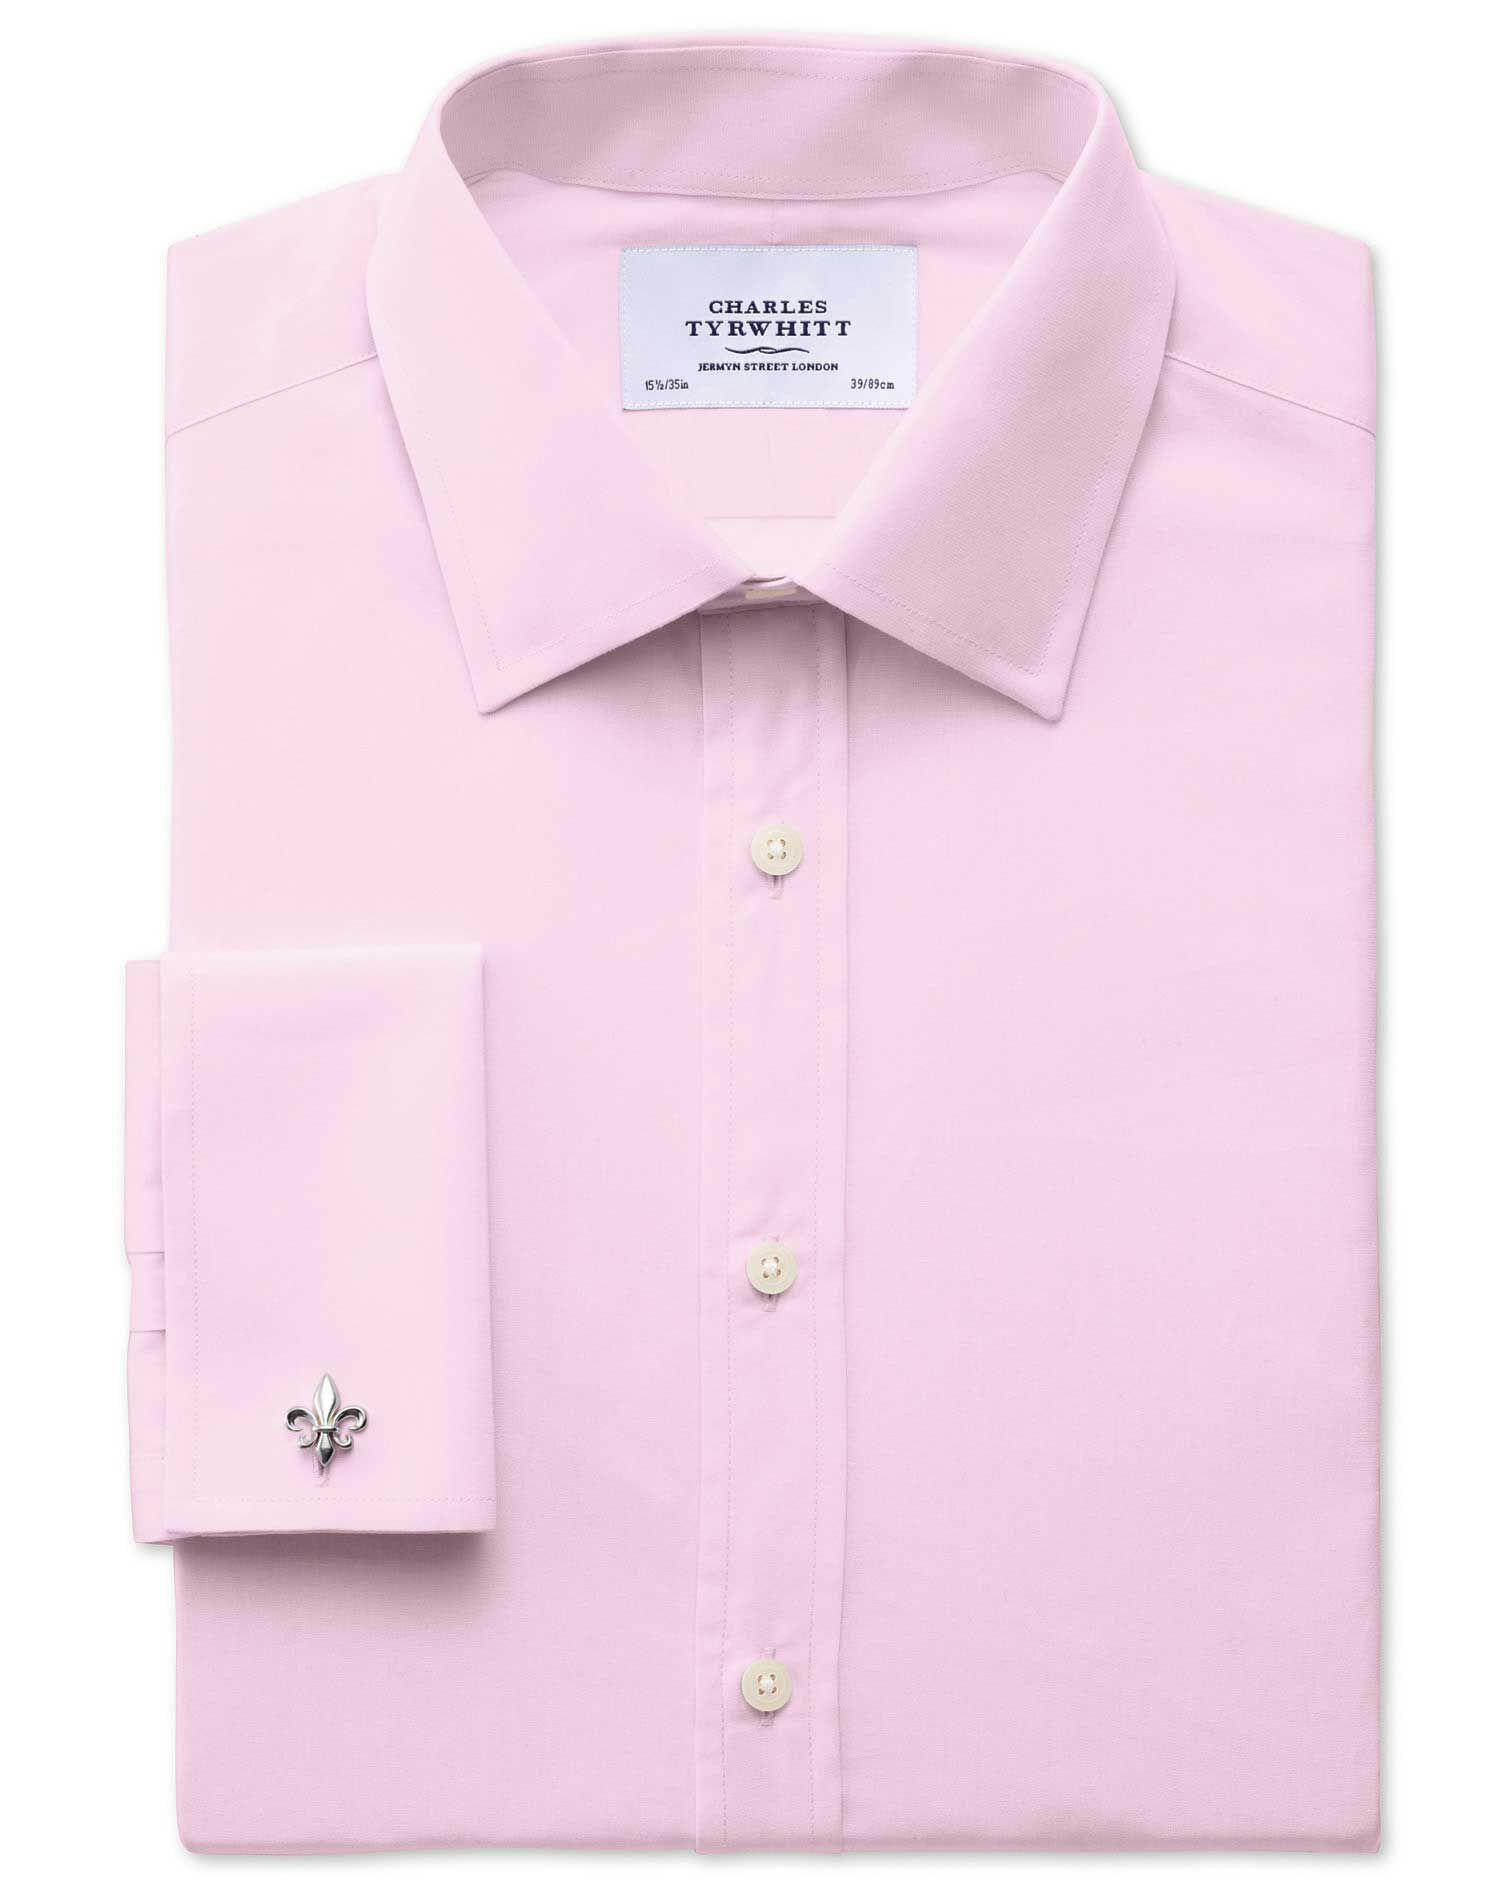 Extra Slim Fit End-On-End Pink Cotton Formal Shirt Double Cuff Size 15.5/36 by Charles Tyrwhitt